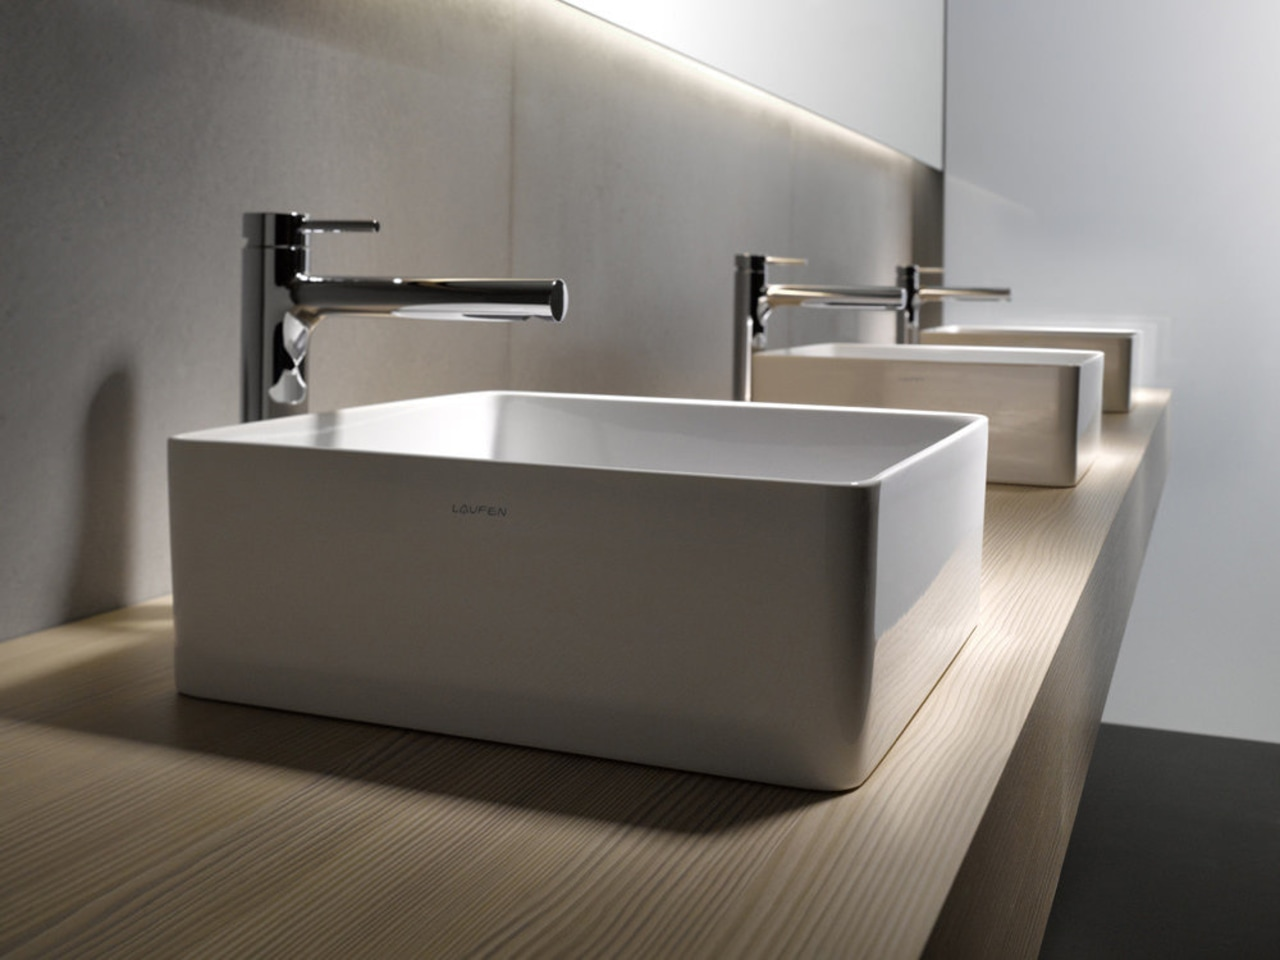 The Living Square range from laufen is also bathroom, bathroom sink, ceramic, floor, plumbing fixture, product design, sink, tap, gray, black